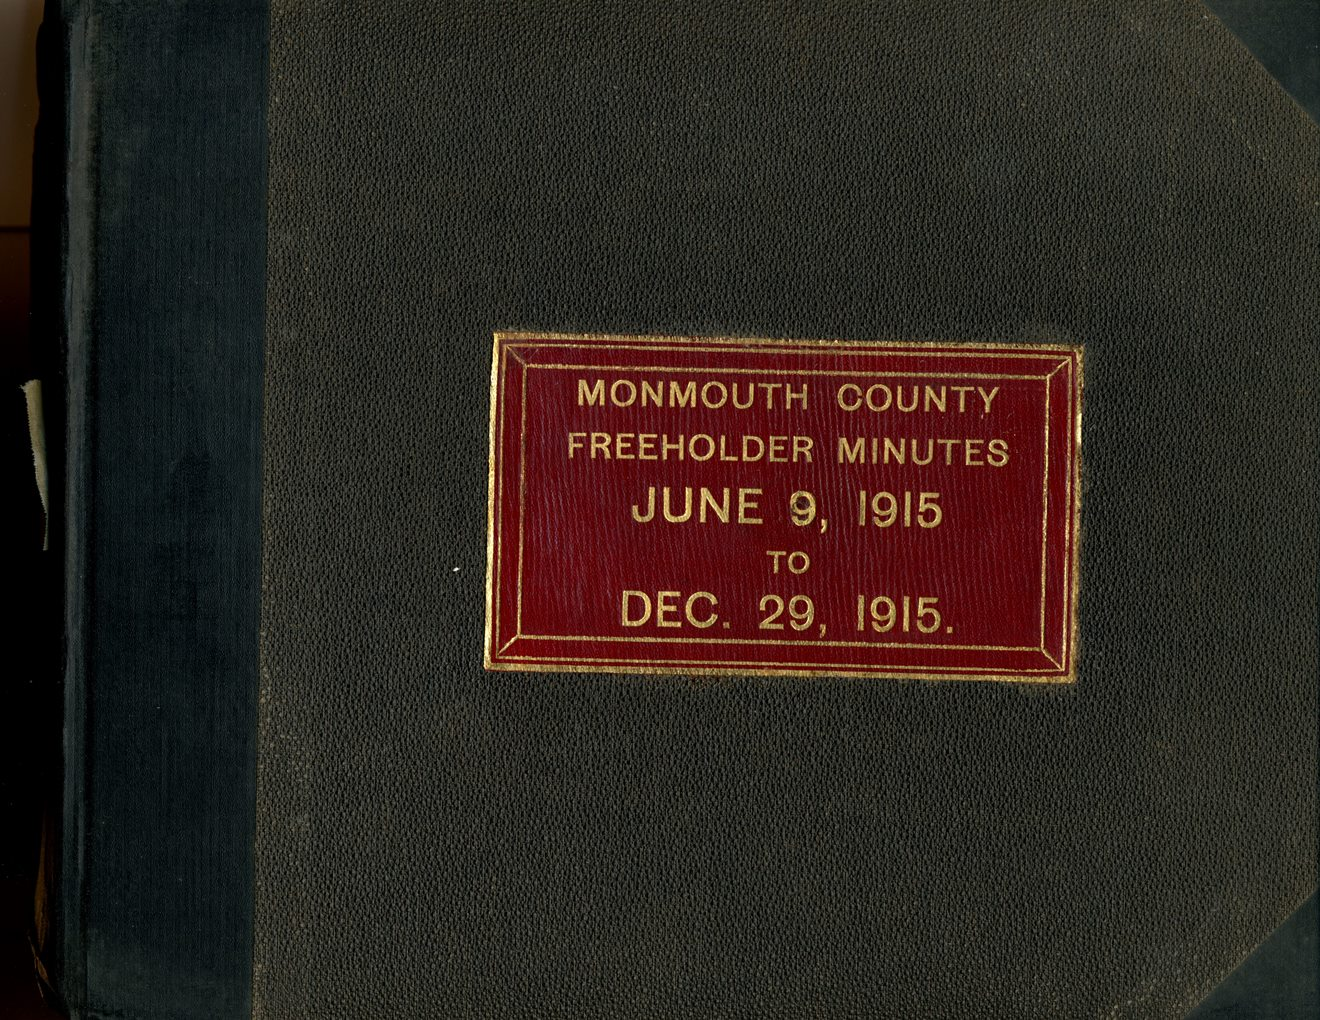 Freeholder Minute book